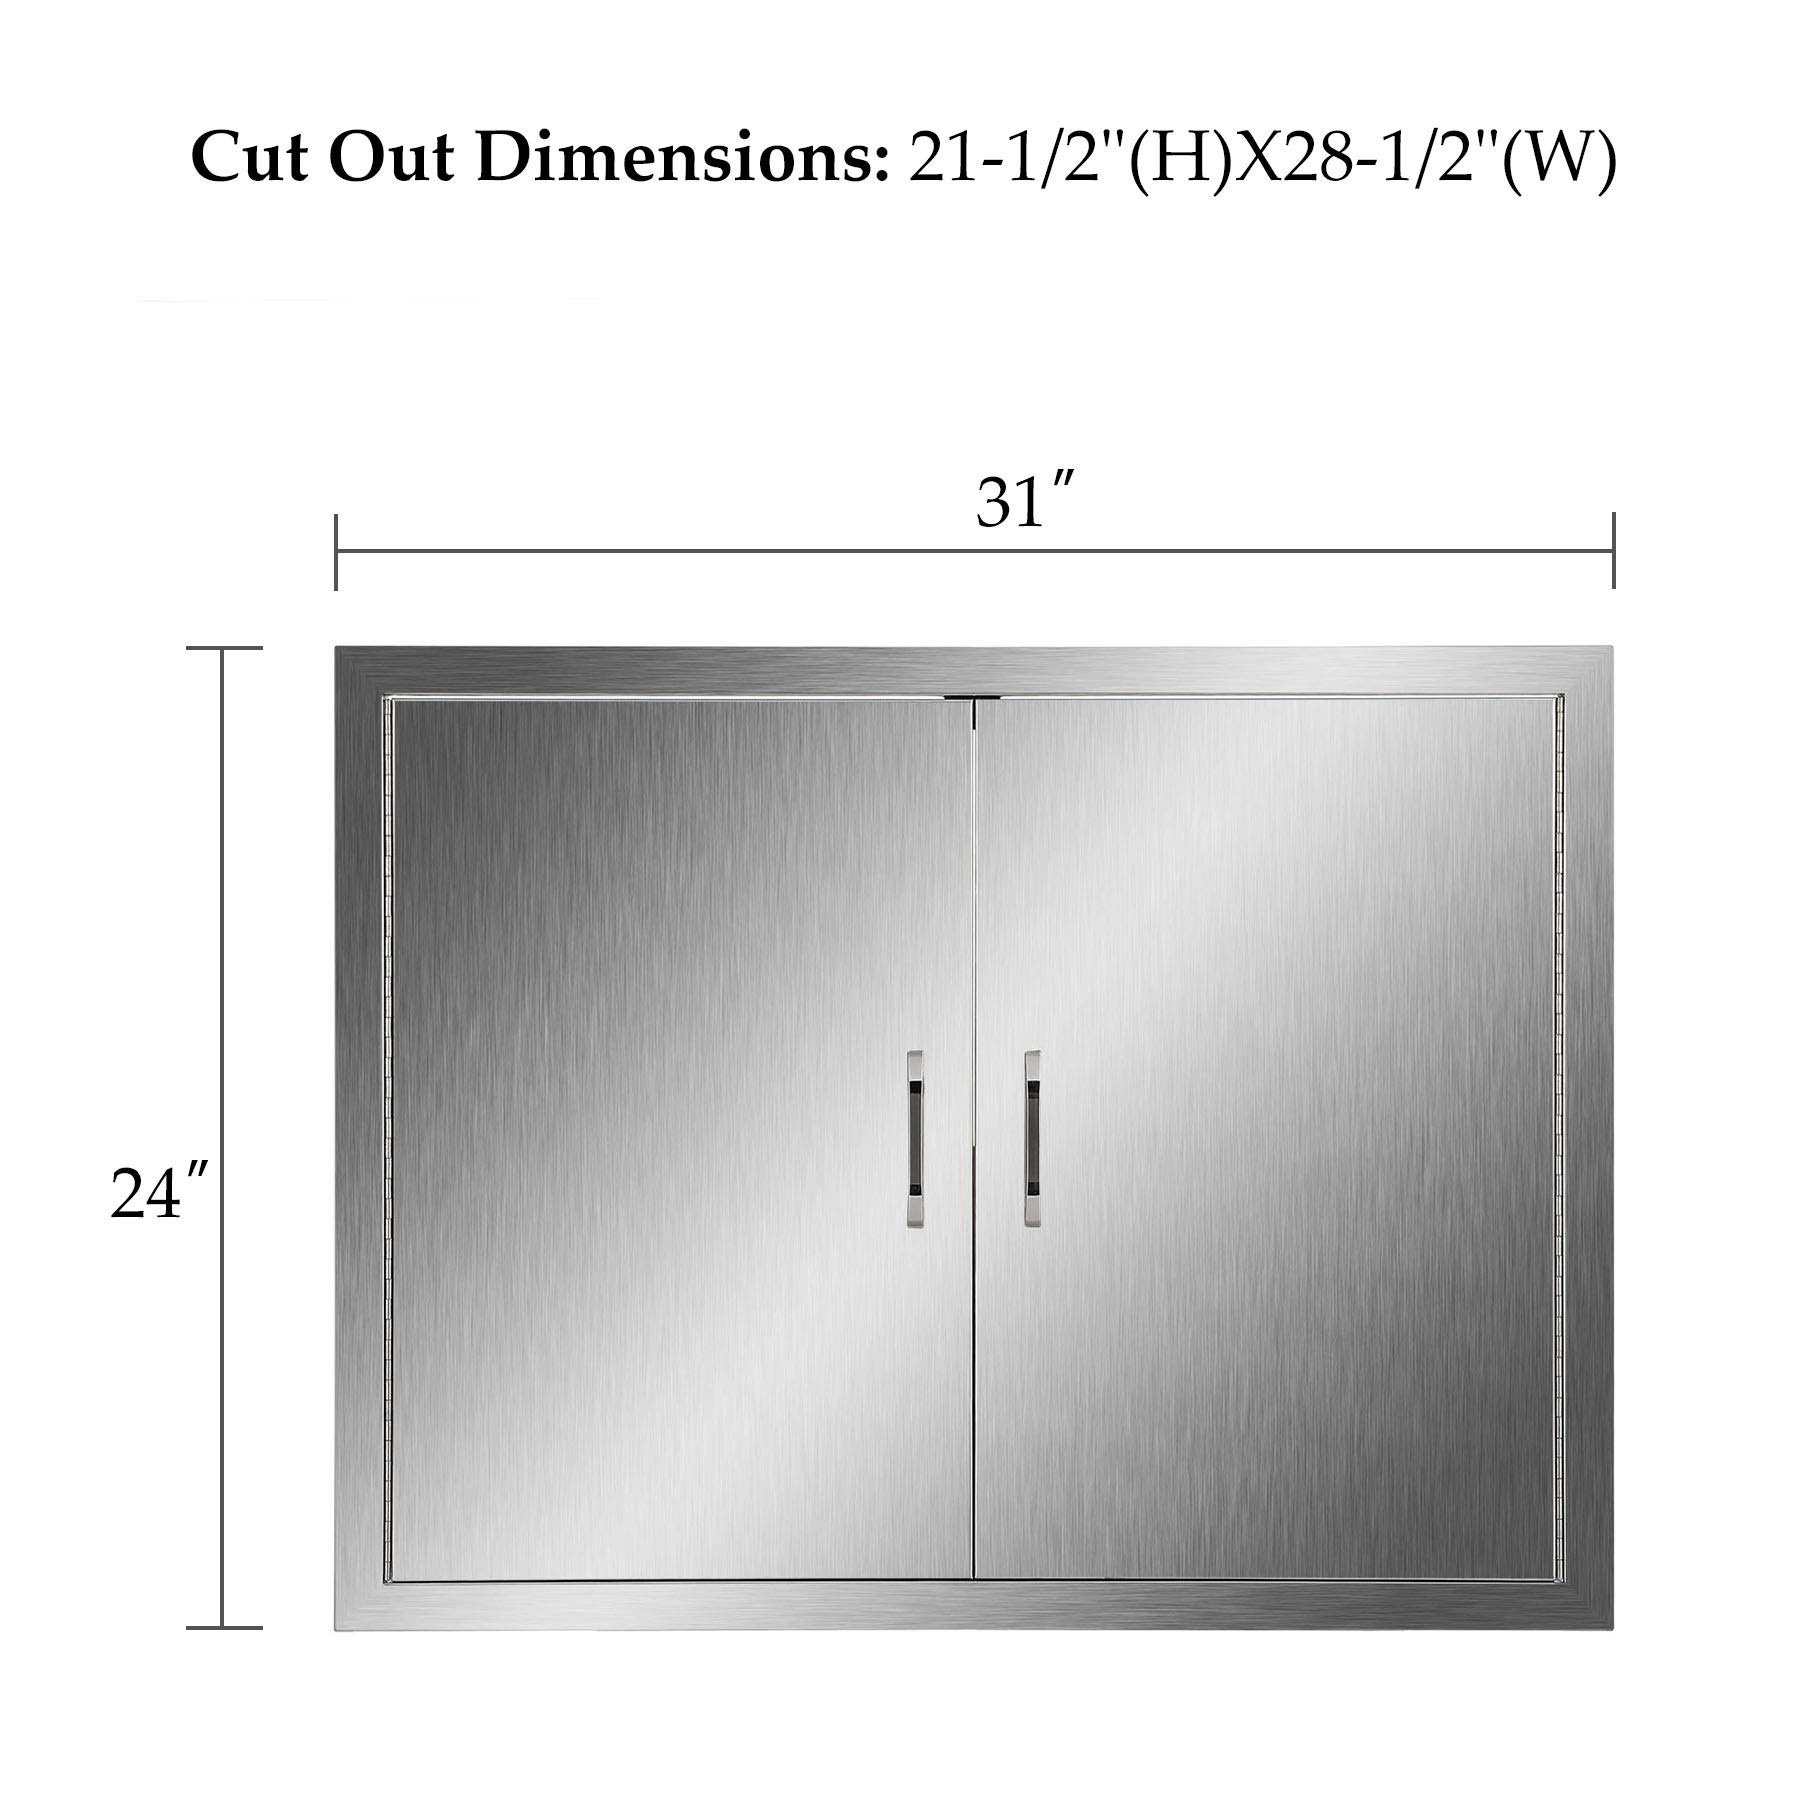 CO-Z Outdoor Kitchen Doors, 304 Brushed Stainless Steel Double BBQ Access Doors for Outdoor Kitchen, Commercial BBQ Island, Grilling Station, Outside Cabinet, Barbeque Grill, Built-in (31'' W x 24'' H) by CO-Z (Image #7)